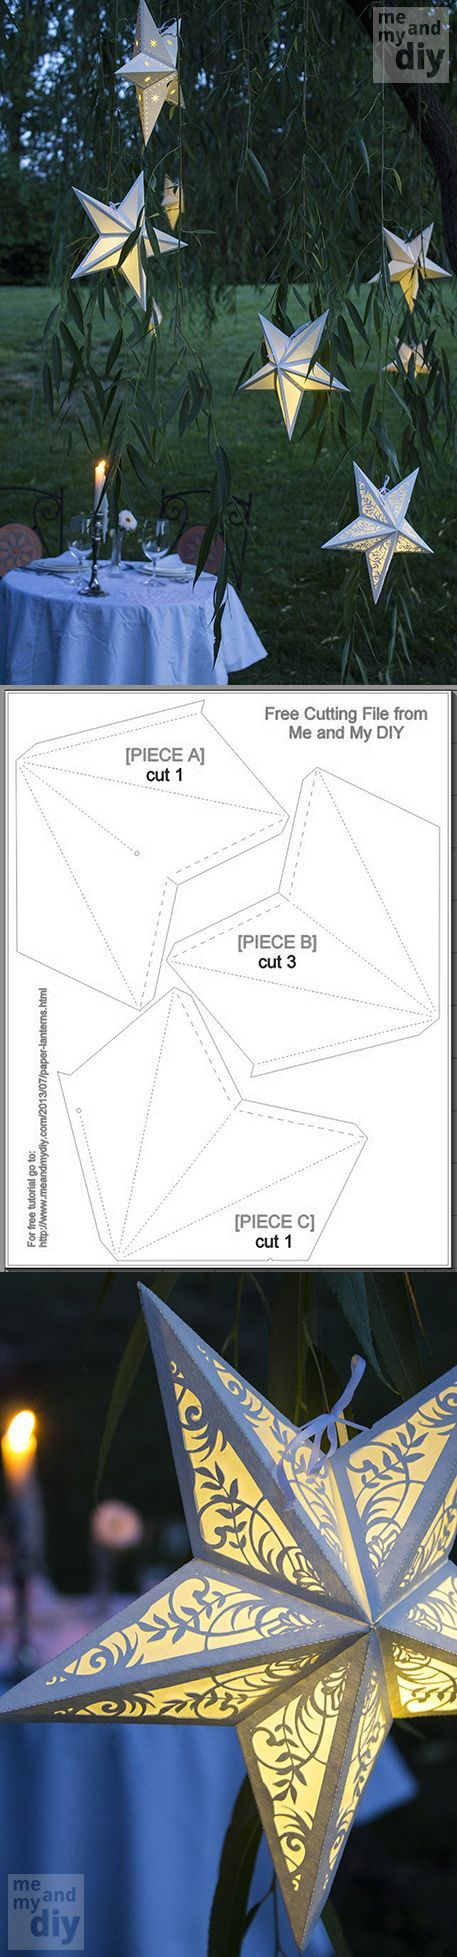 Diy paper star lanterns with free cutting file and pdf for Paper lantern tutorial